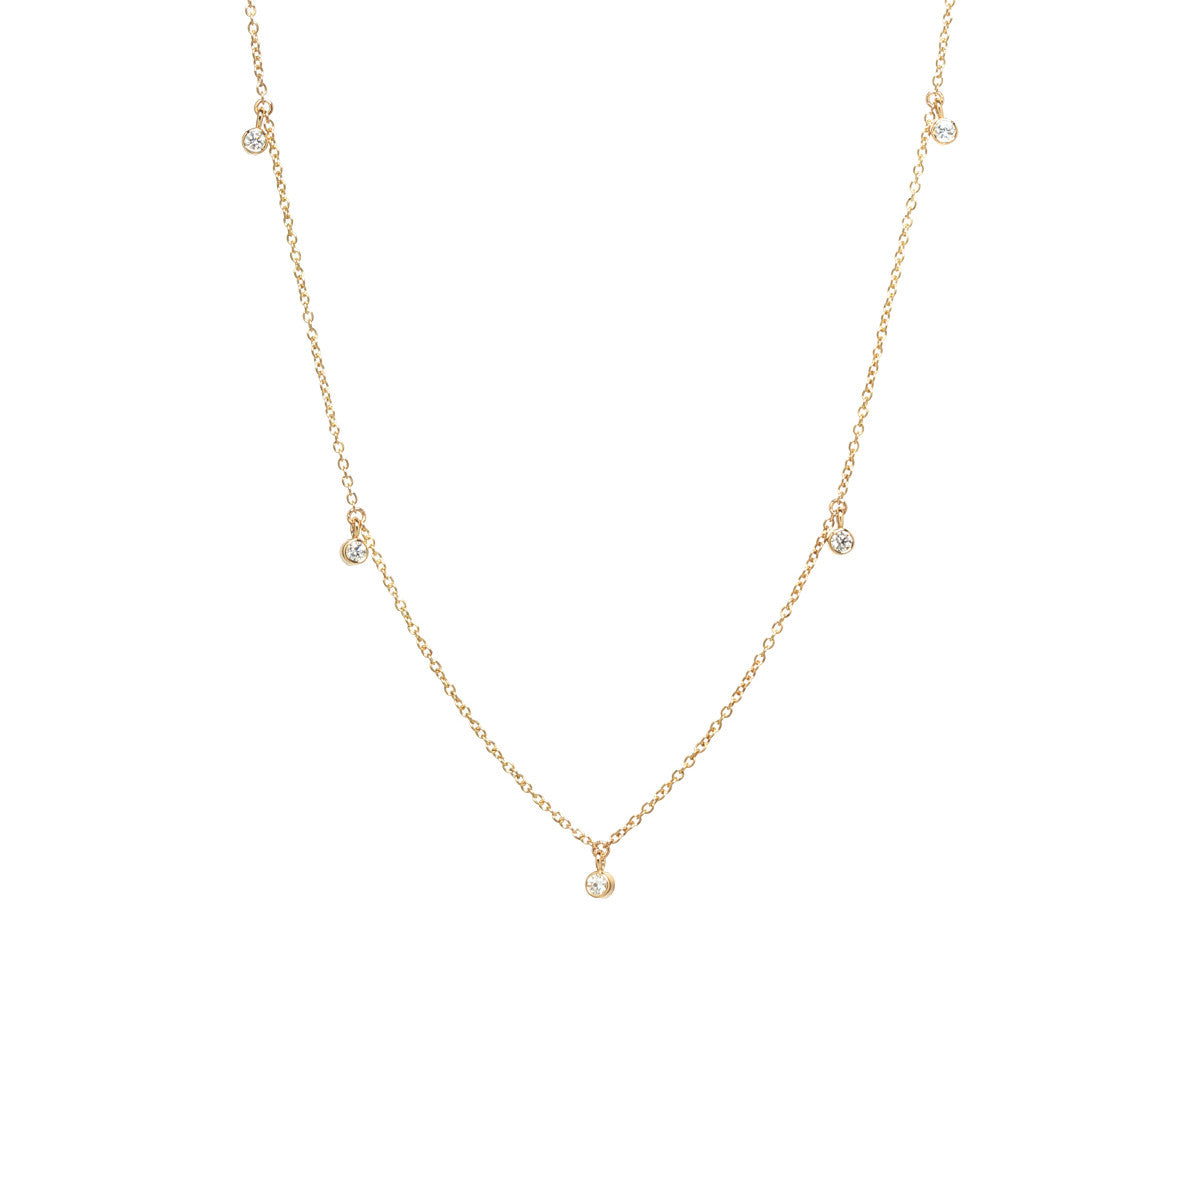 Zoë Chicco 14kt Yellow Gold 5 Dangling White Diamond Choker Necklace